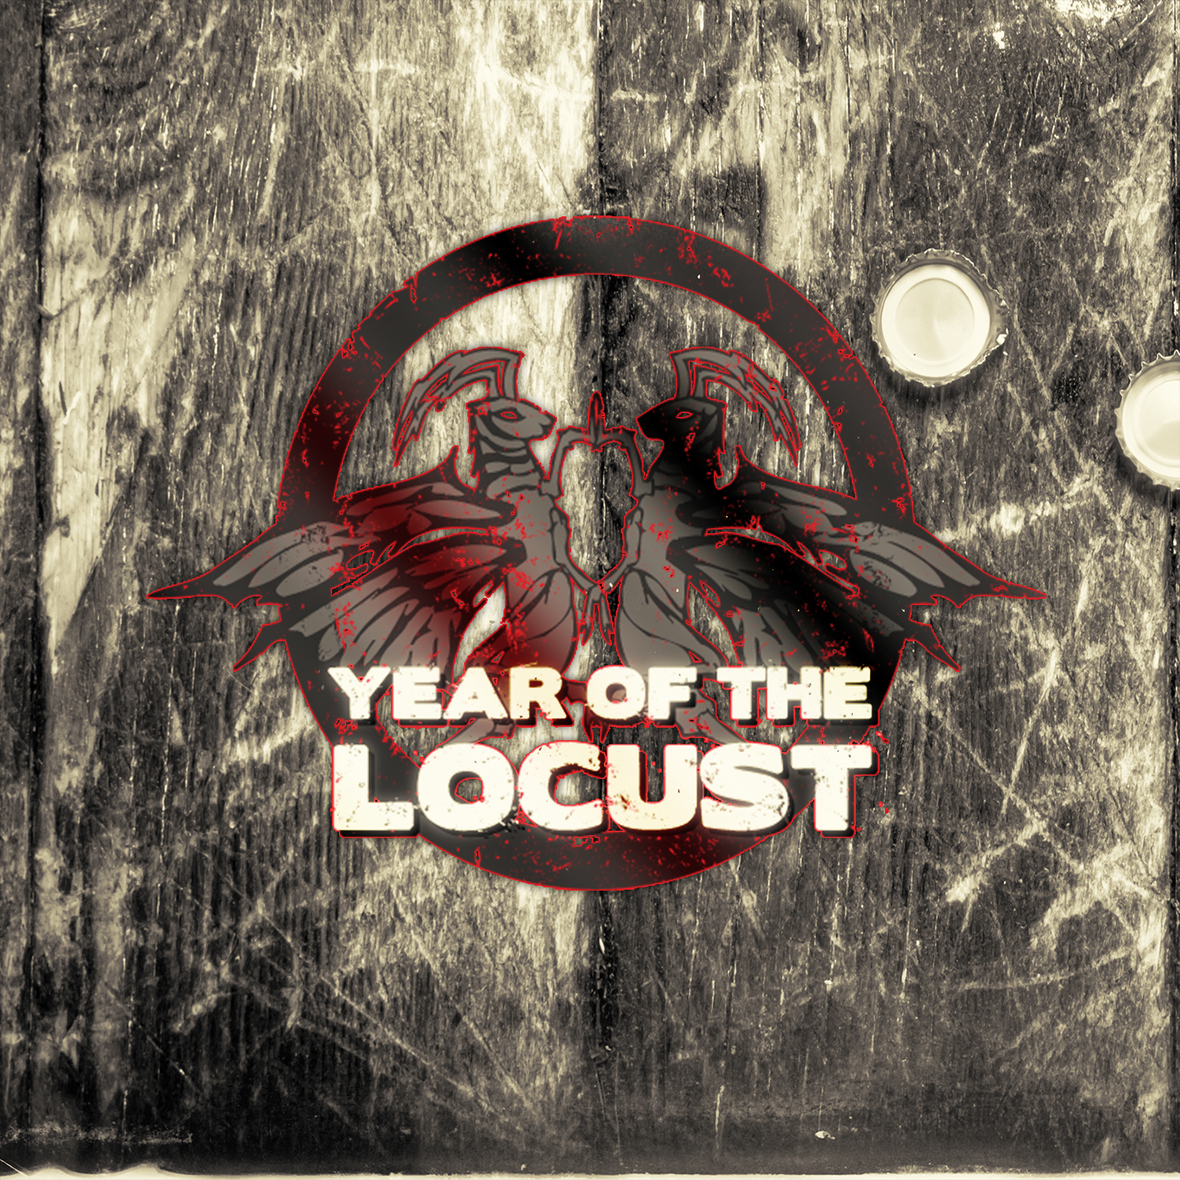 YEAR OF THE LOCUST to Join TESLA on SHOCK USA TOUR